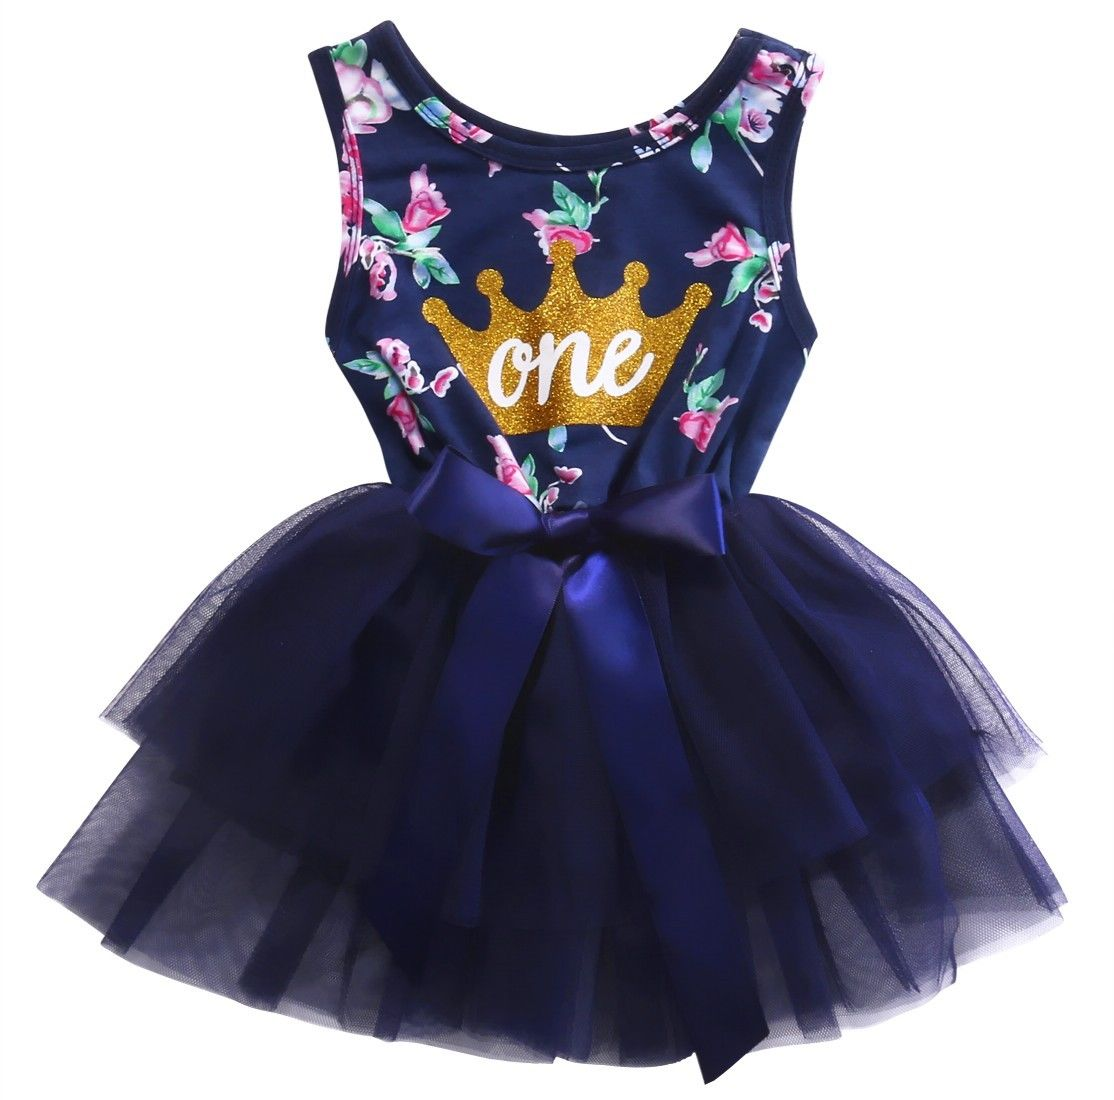 2018 New Cute Baby Tutu Dress Adorable Baby Gir Summer Bowknot Floral Print Party Tulle Dress Sleeveless Girls Sundress Clothes